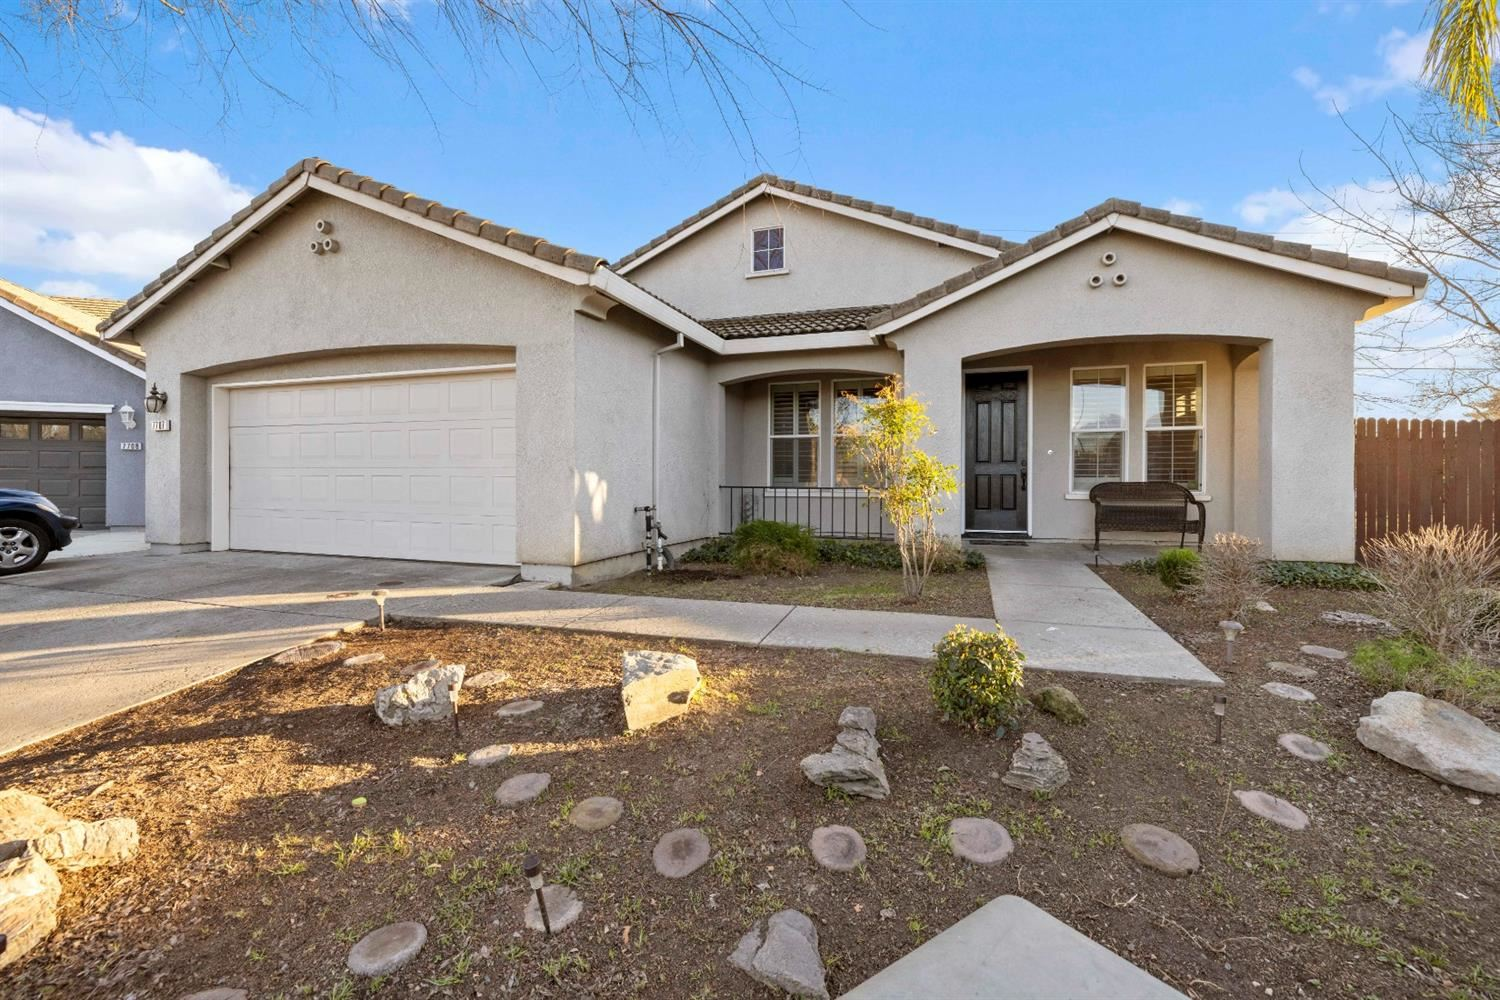 Photo of 7707 Kilchurn Court, Antelope, CA 95843 (MLS # 221011254)